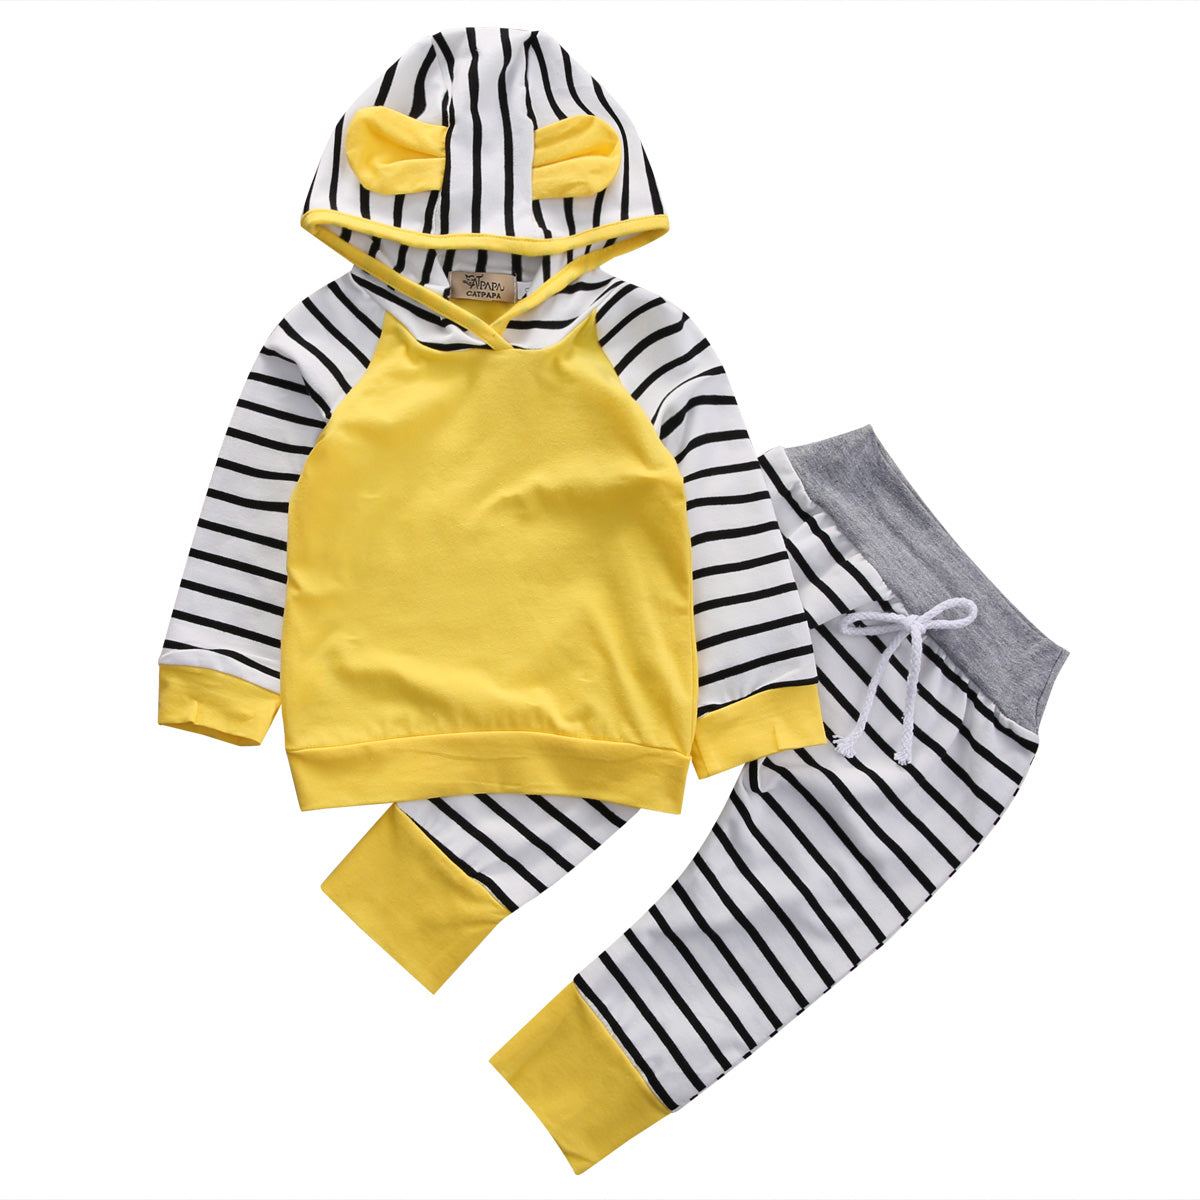 3D Ear Hoodie + Striped Trouser 2pcs Baby Clothing Set